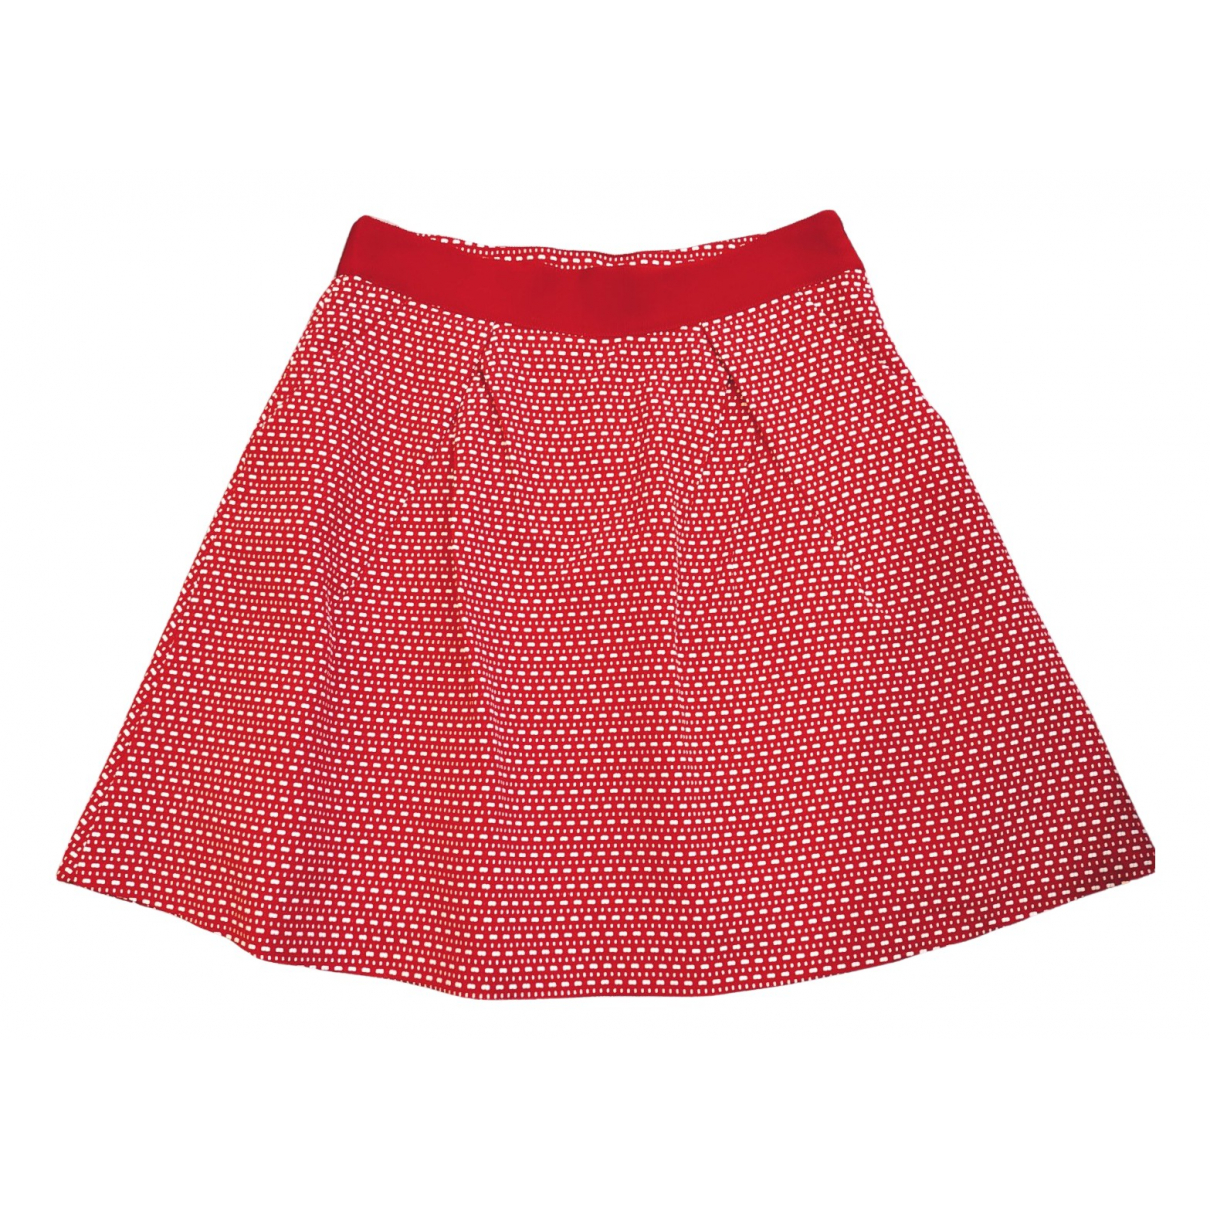 Moschino N Red Cotton skirt for Women 44 IT